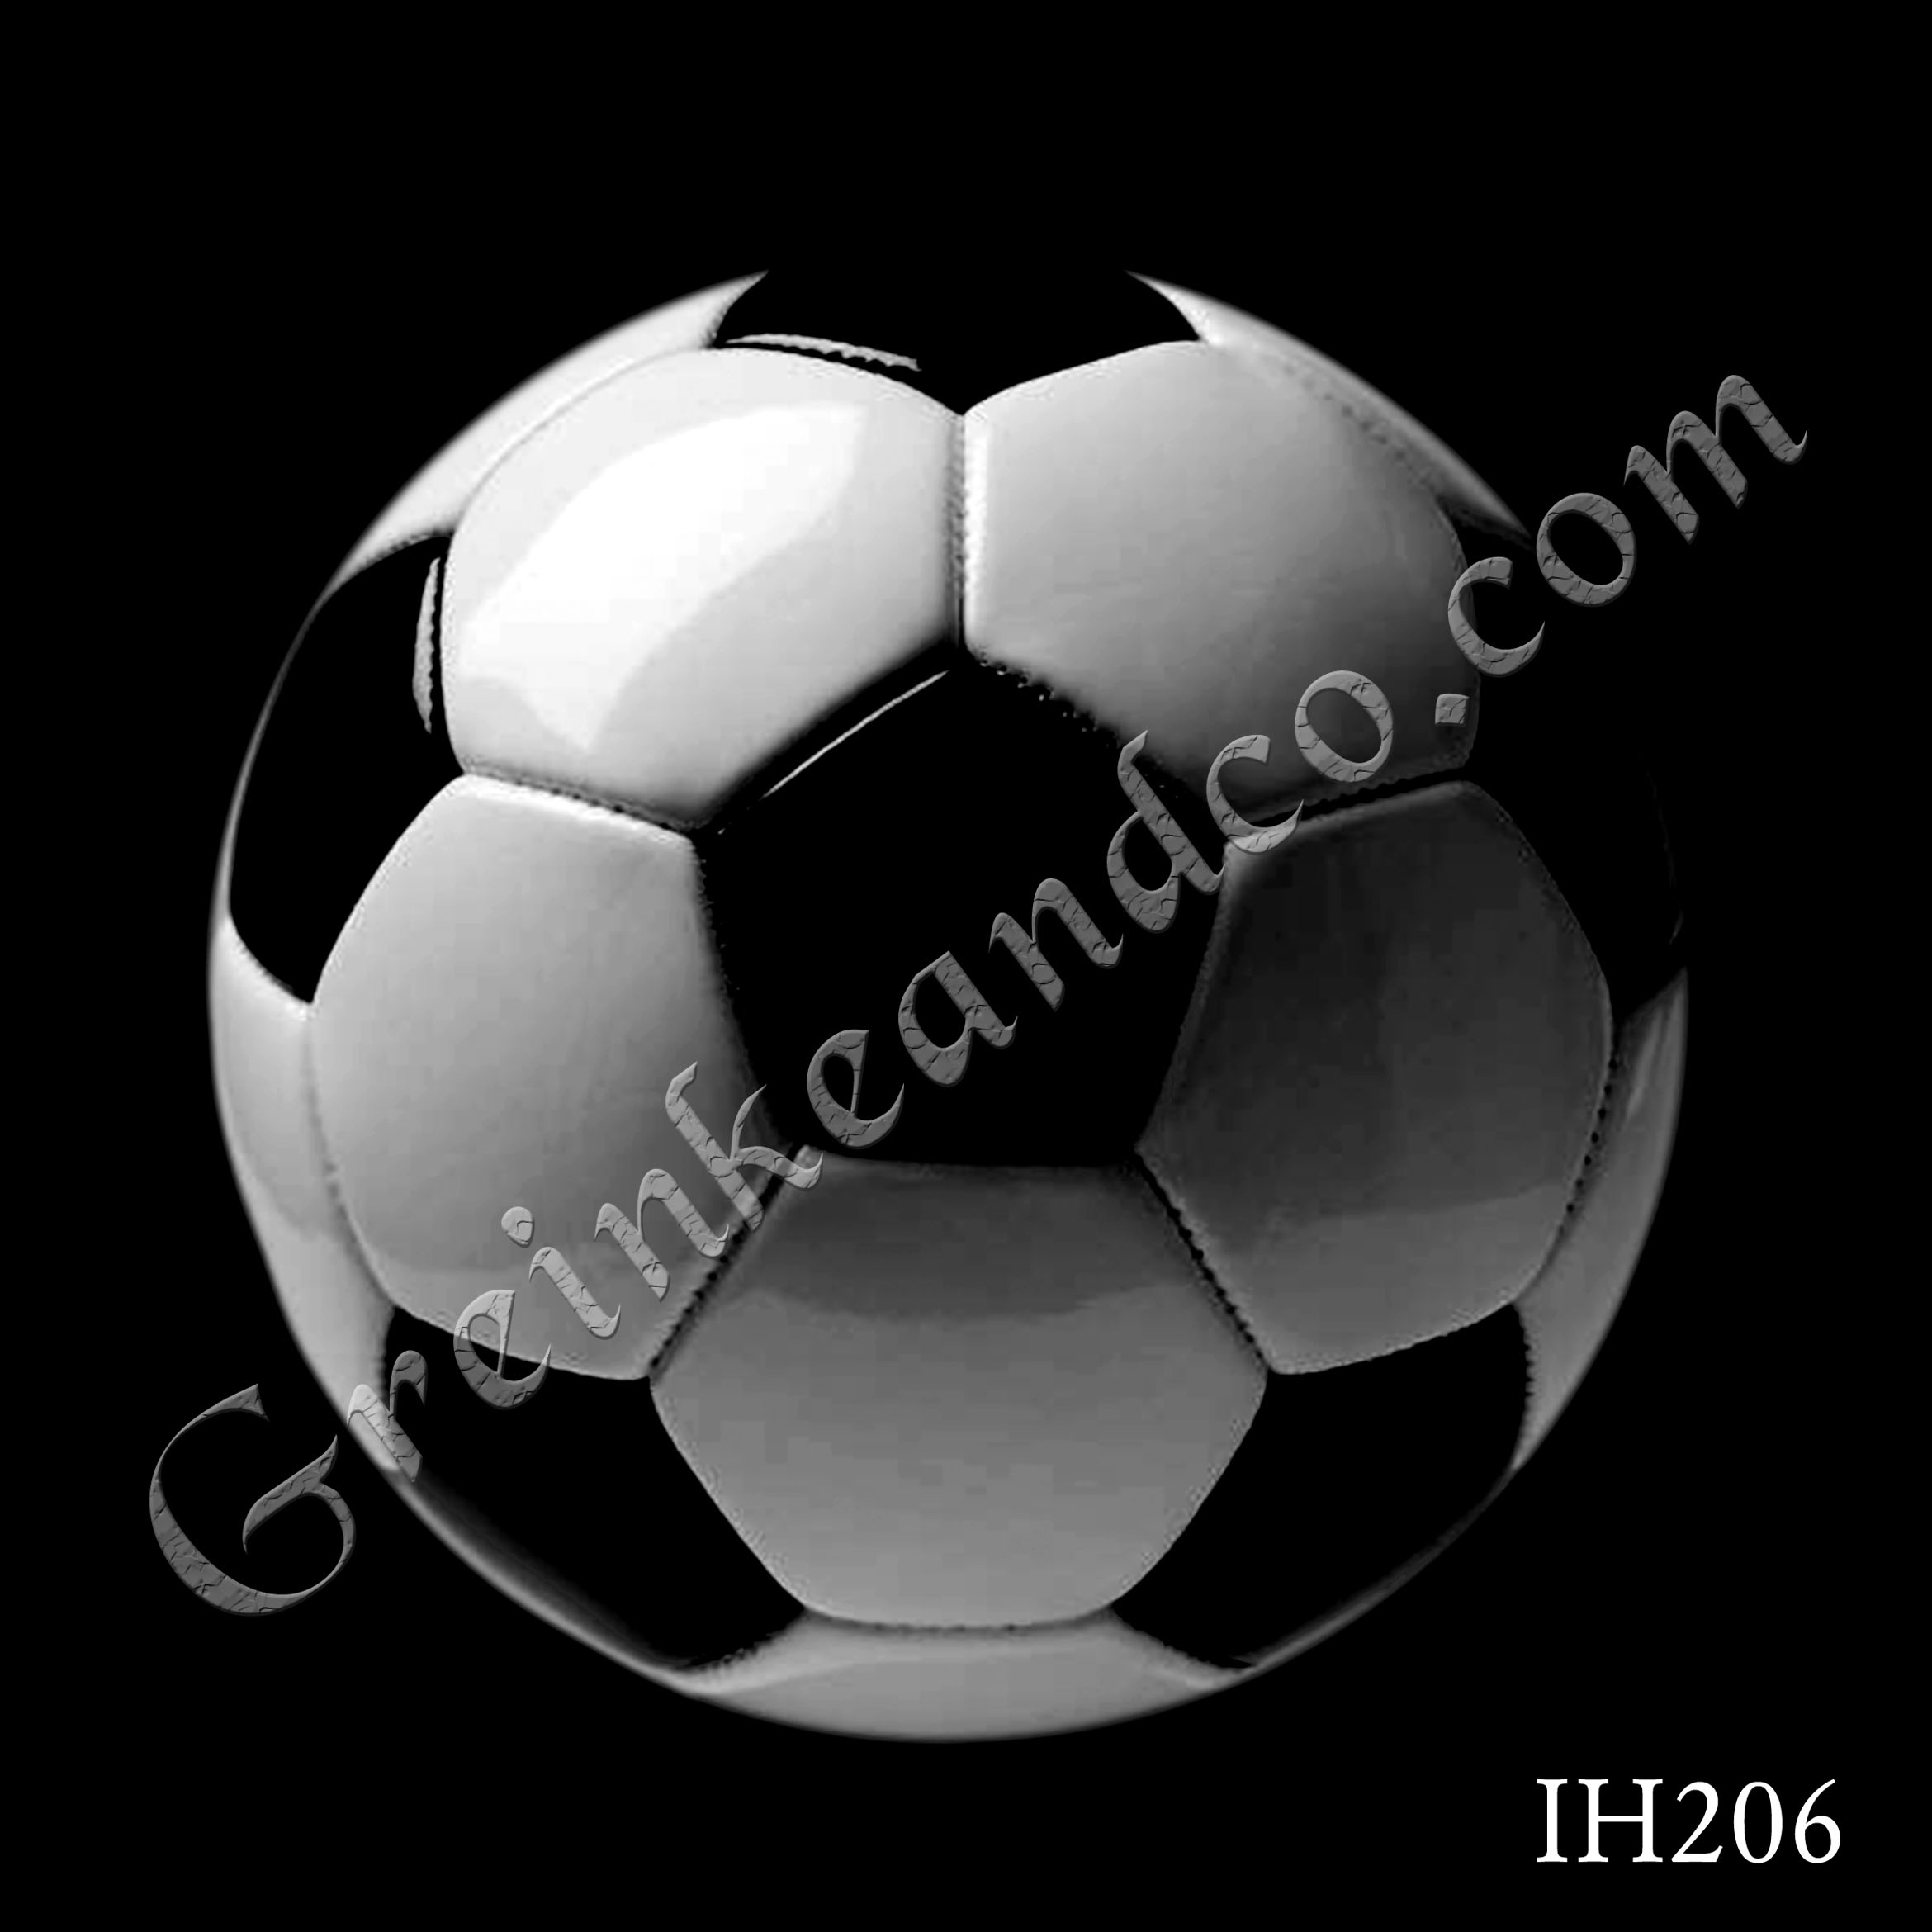 soccerball photo